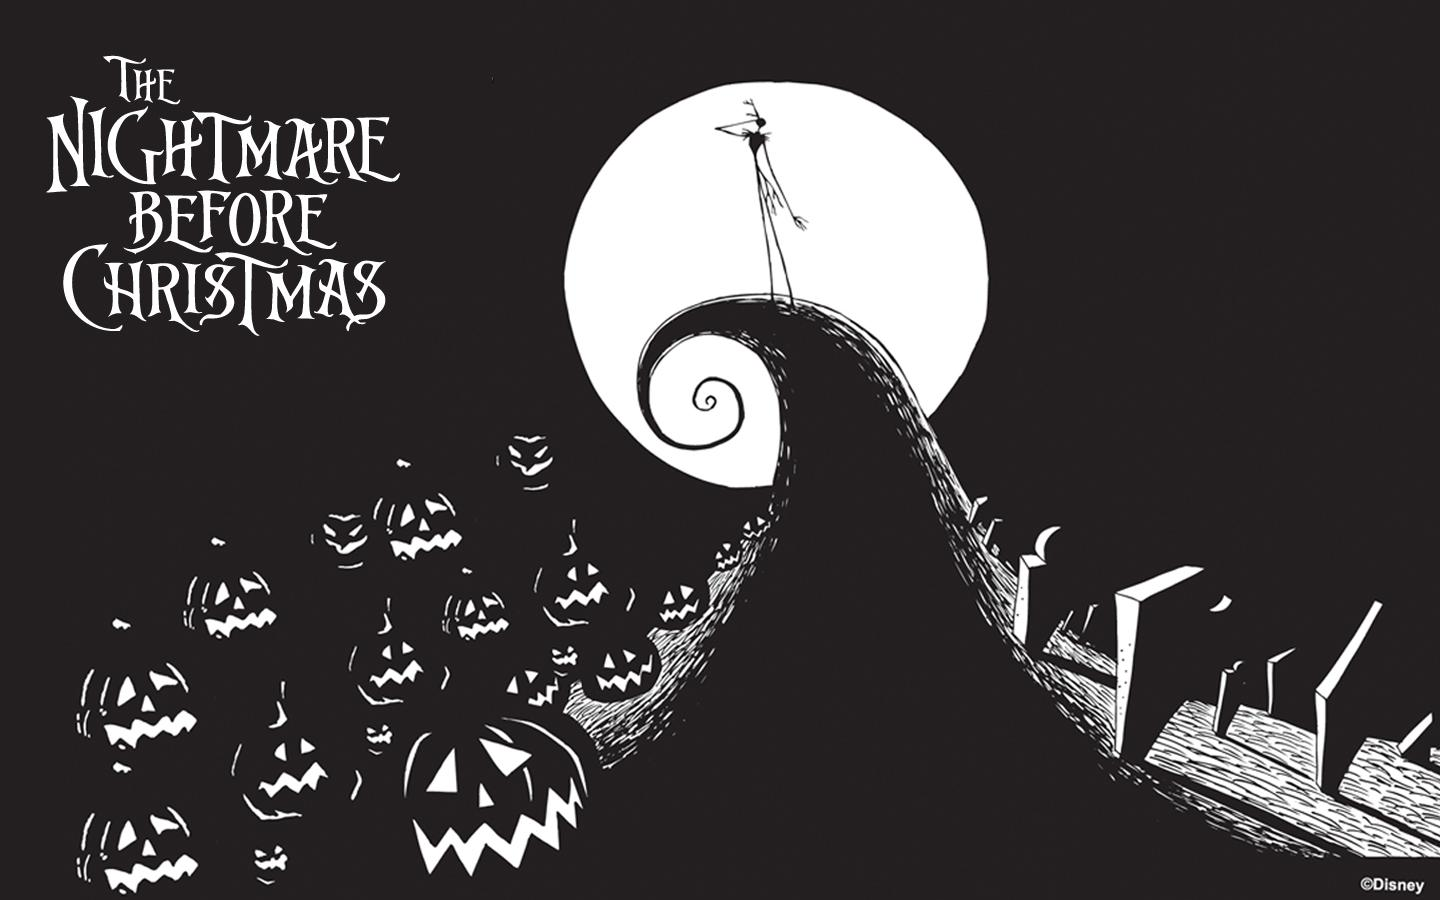 nightmare before christmas wallpaper desktop   wwwwallpapers in hd 1440x900